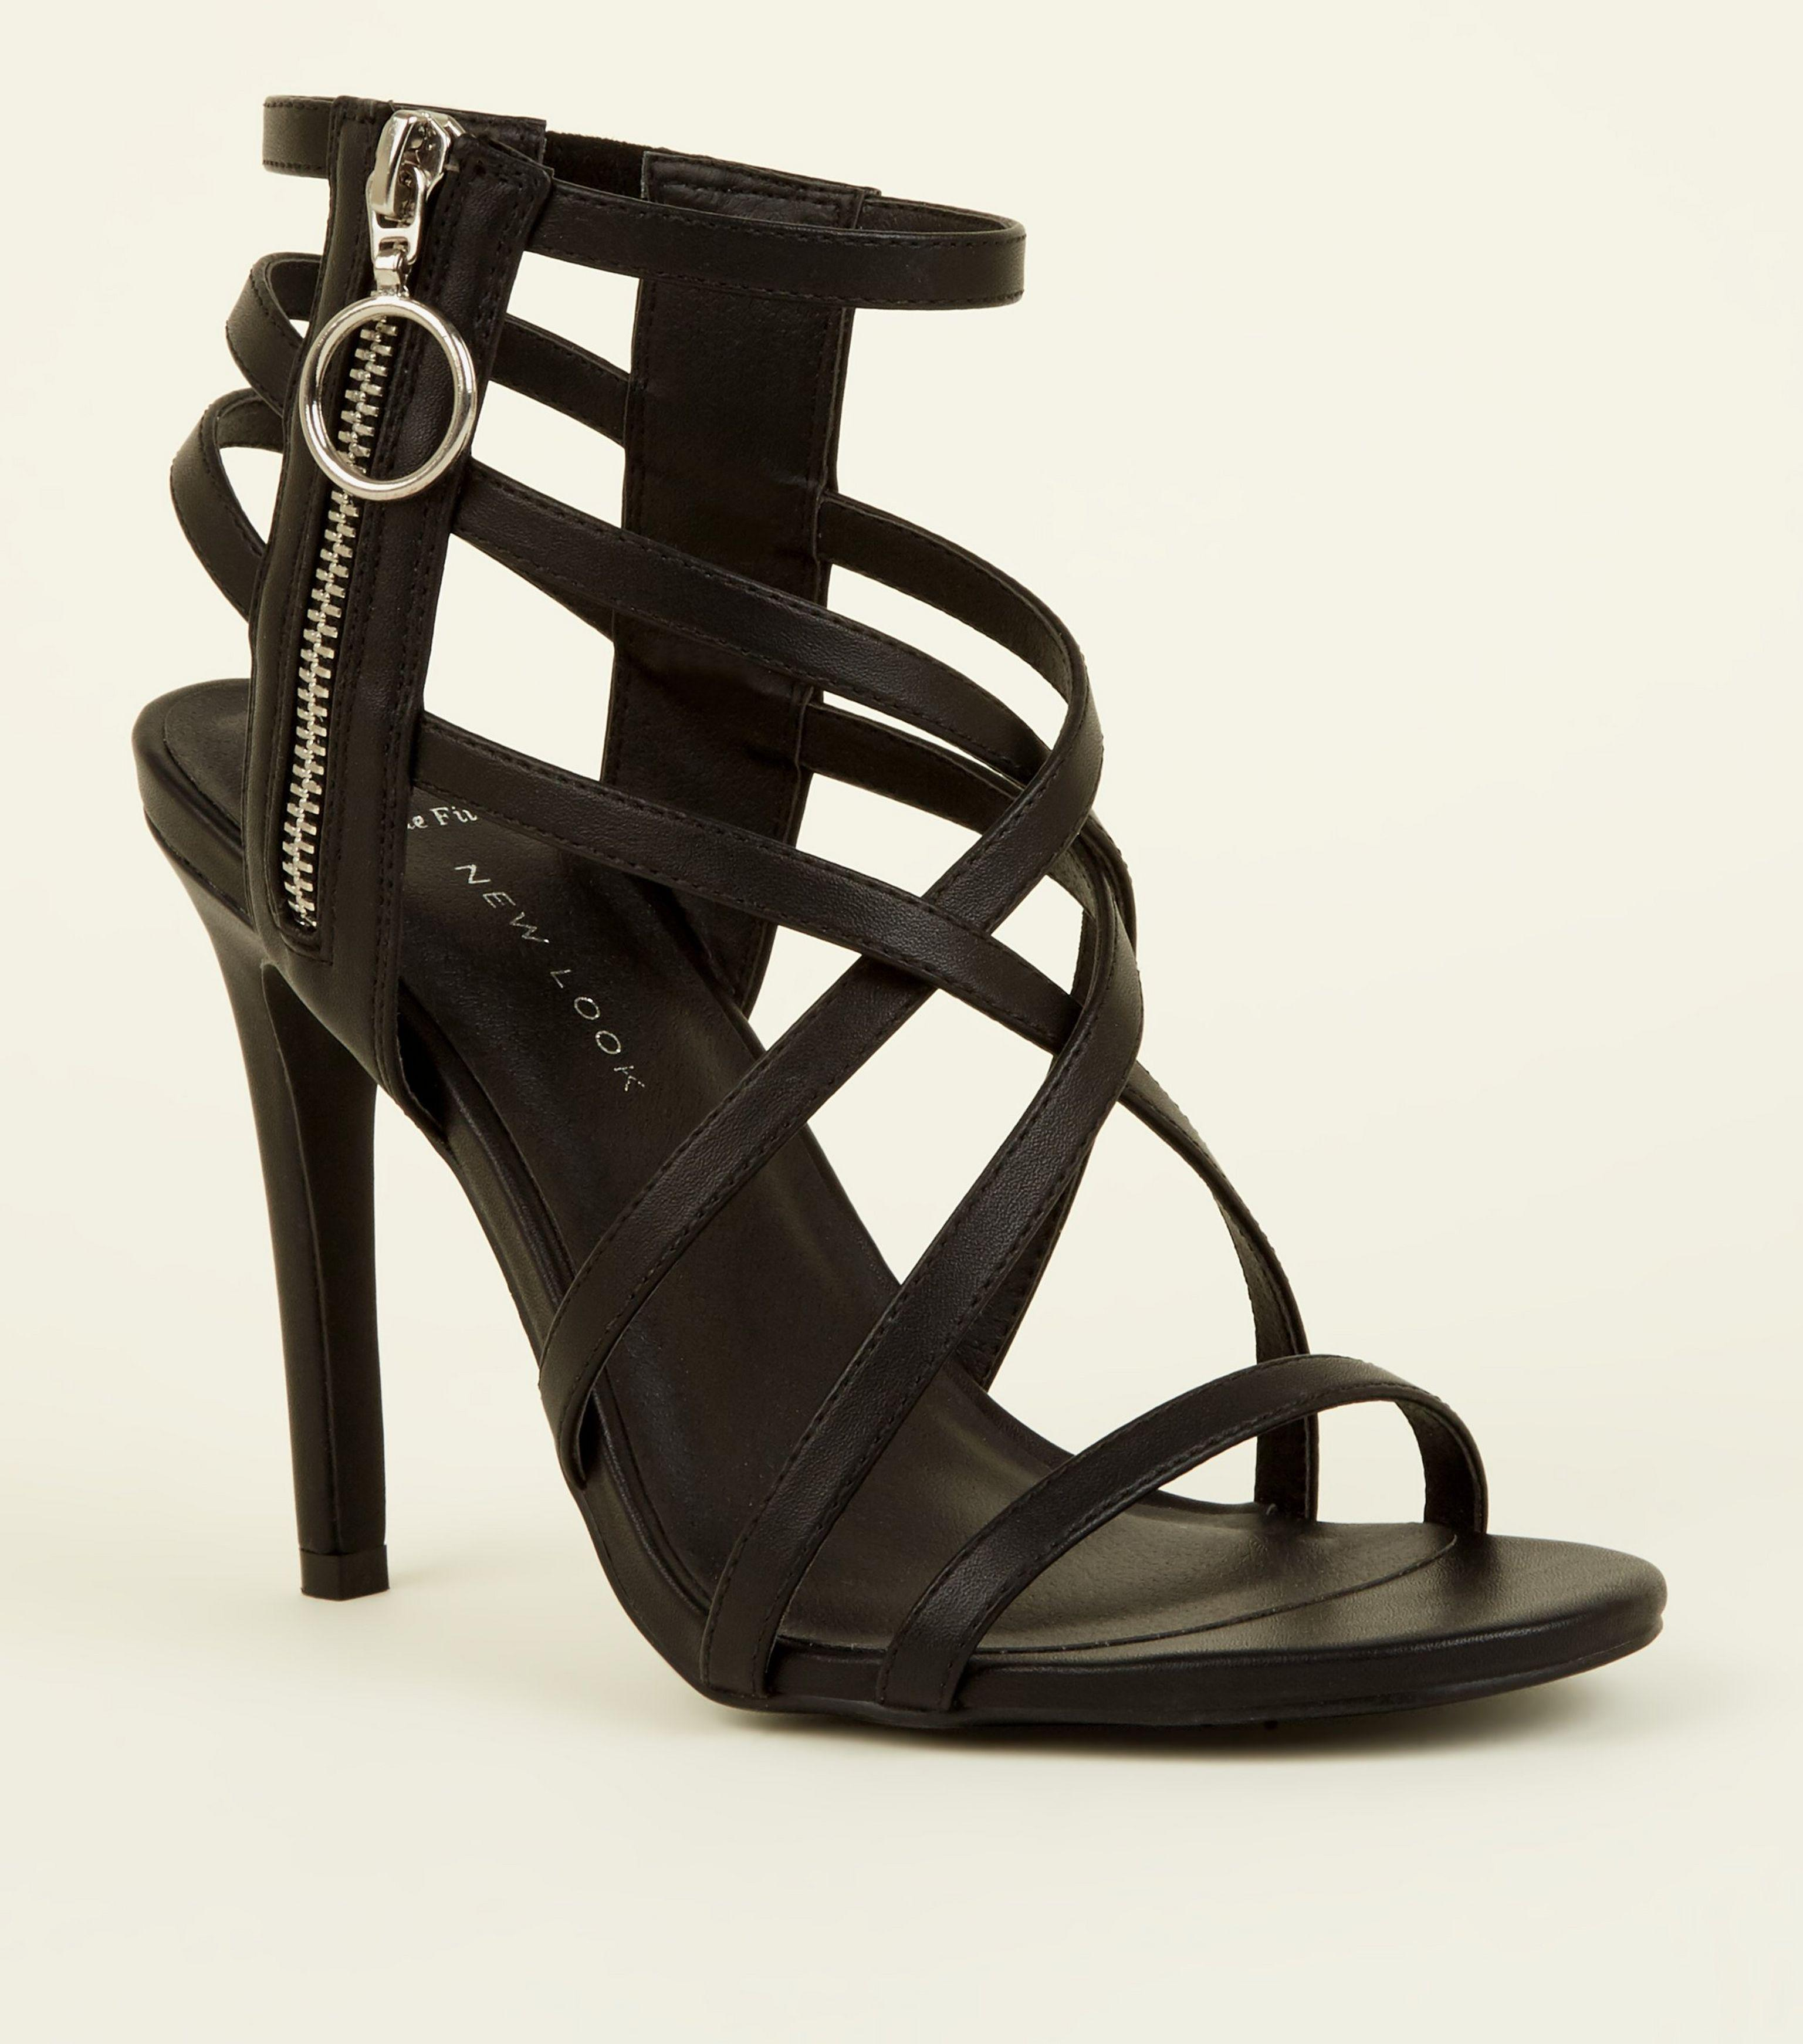 583e453850 New Look Wide Fit Black Strappy Ring Zip Stiletto Sandals in Black ...